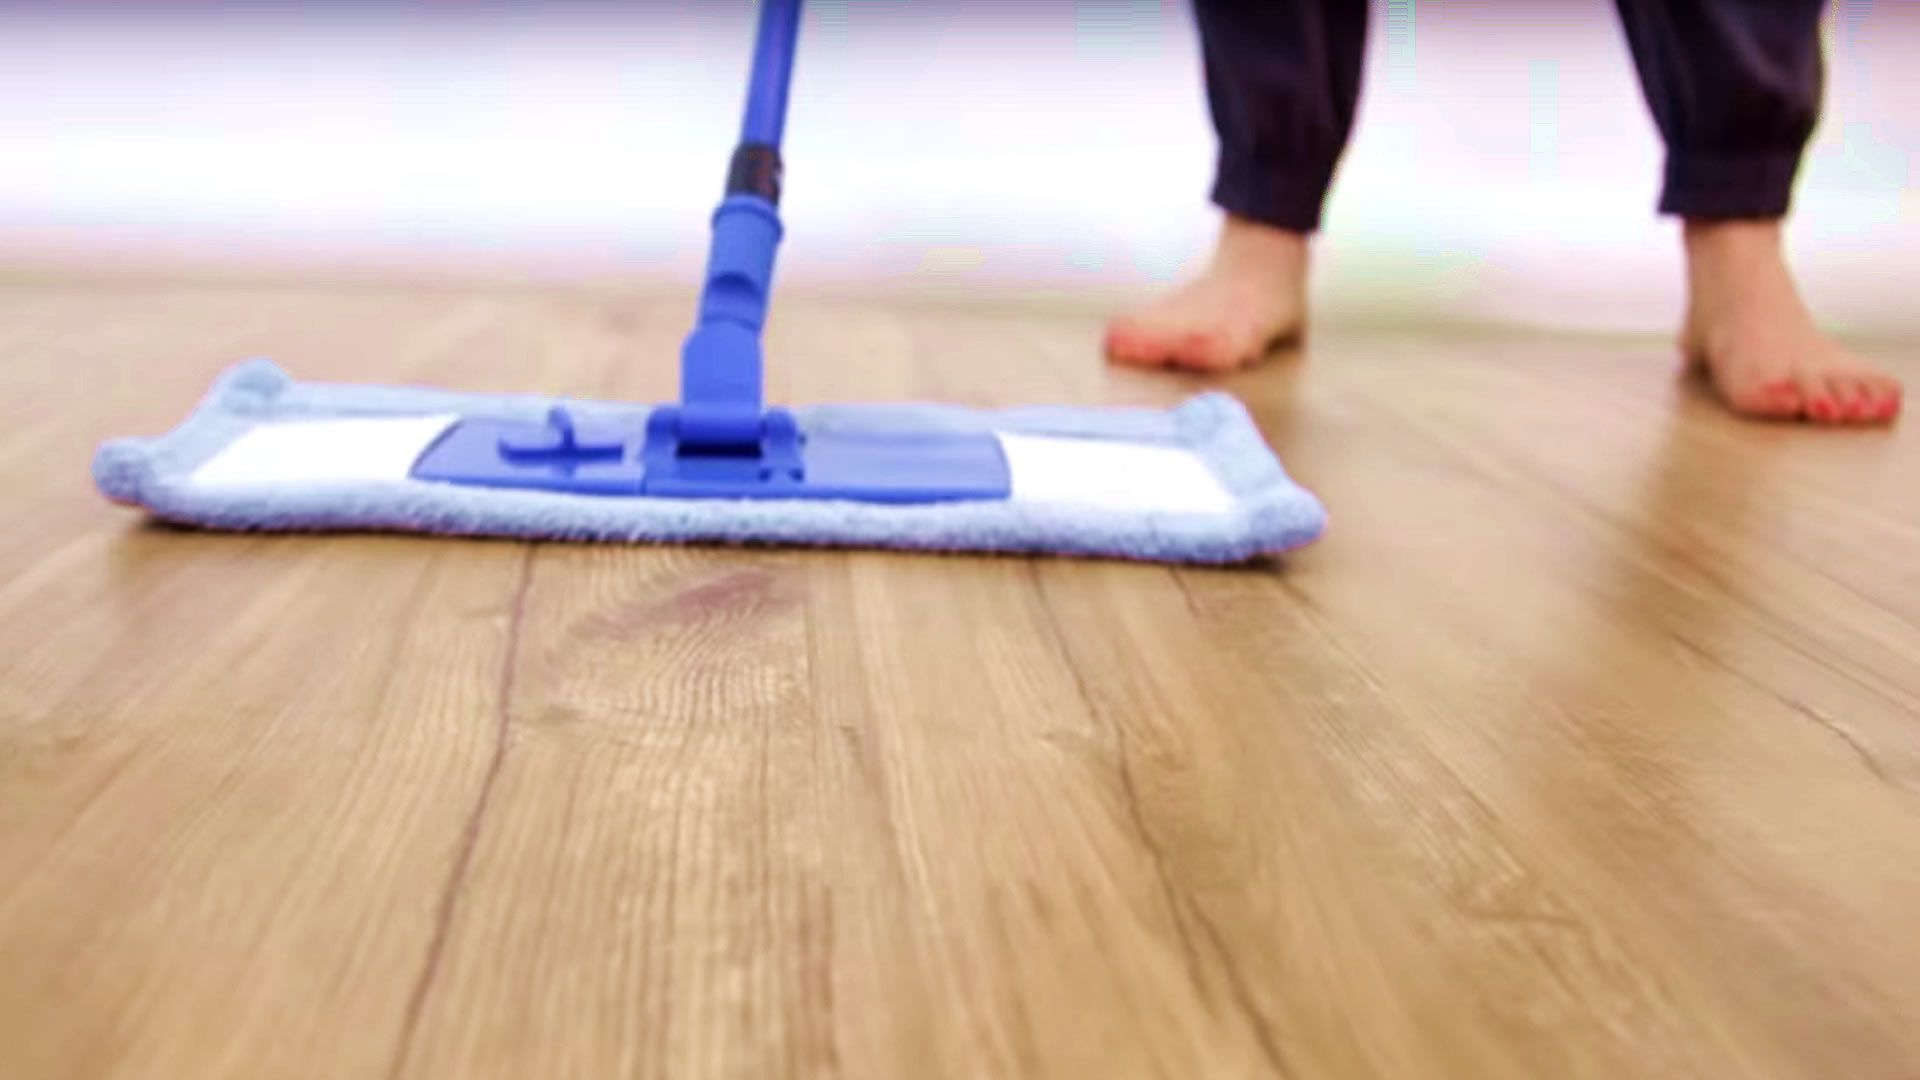 Bamboo floors oftentimes look streaky and hazy after being cleaned